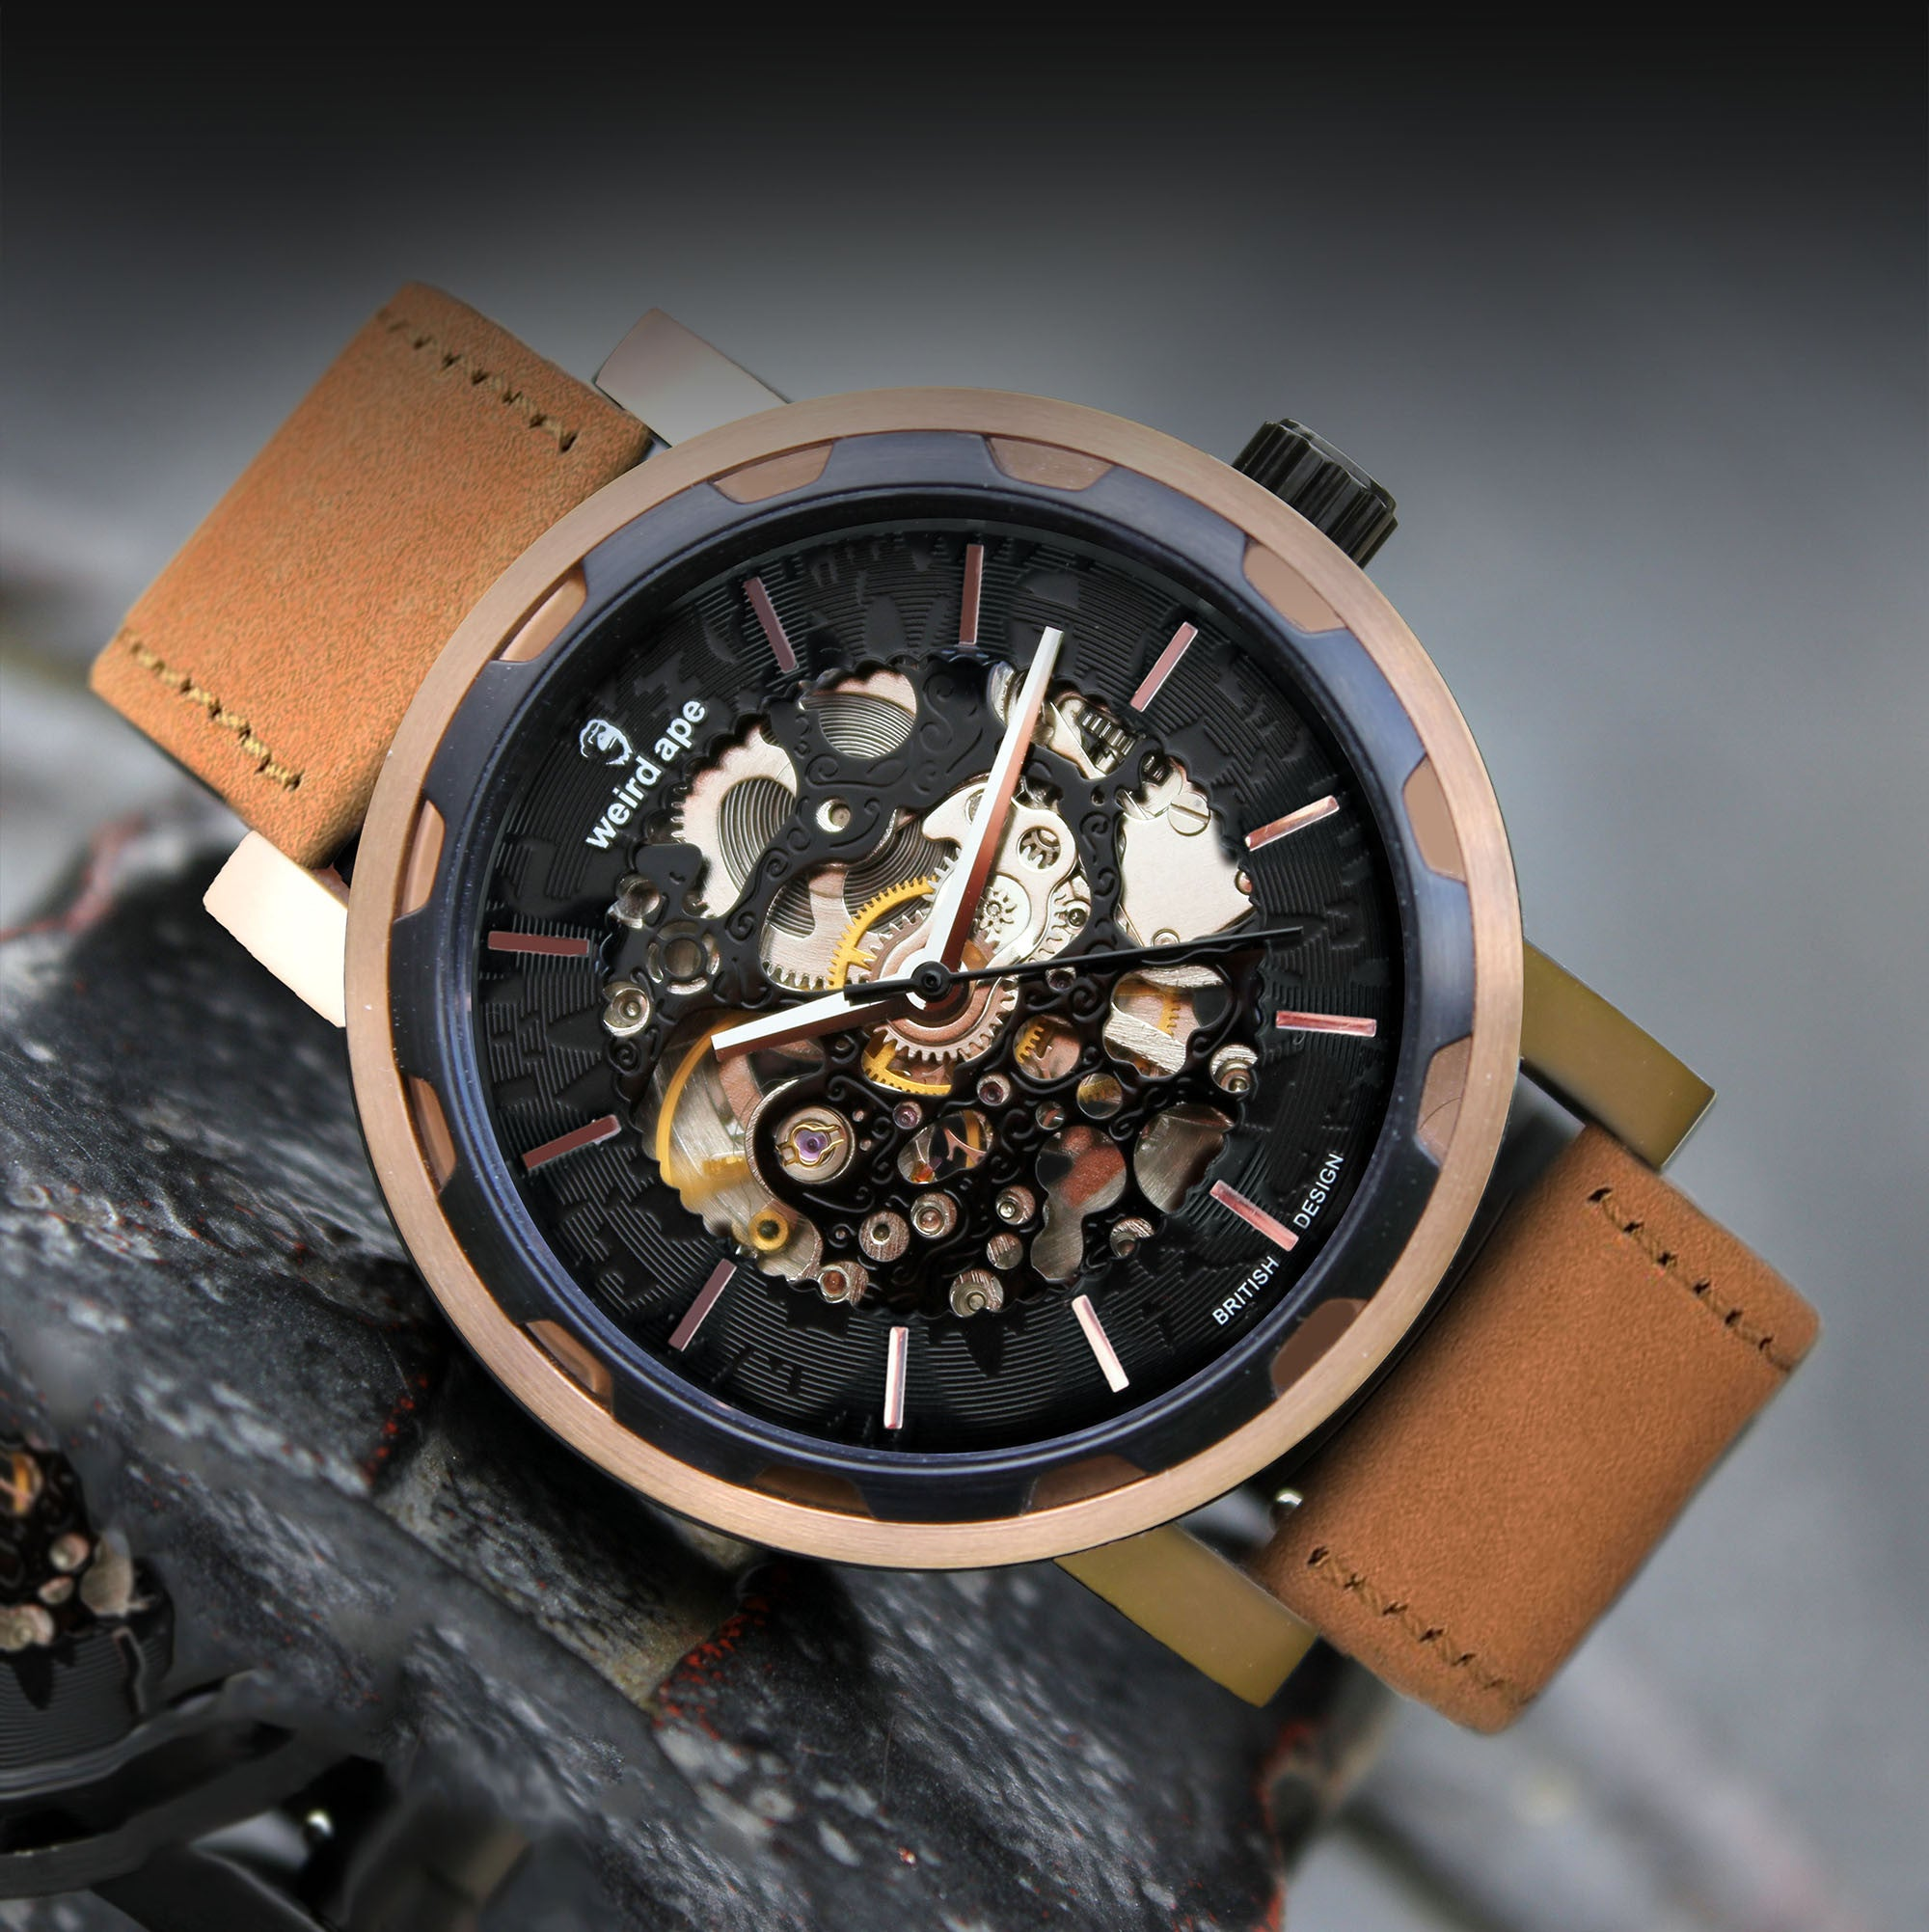 A picture of a rose gold mechanical watch with a leather tan strap.